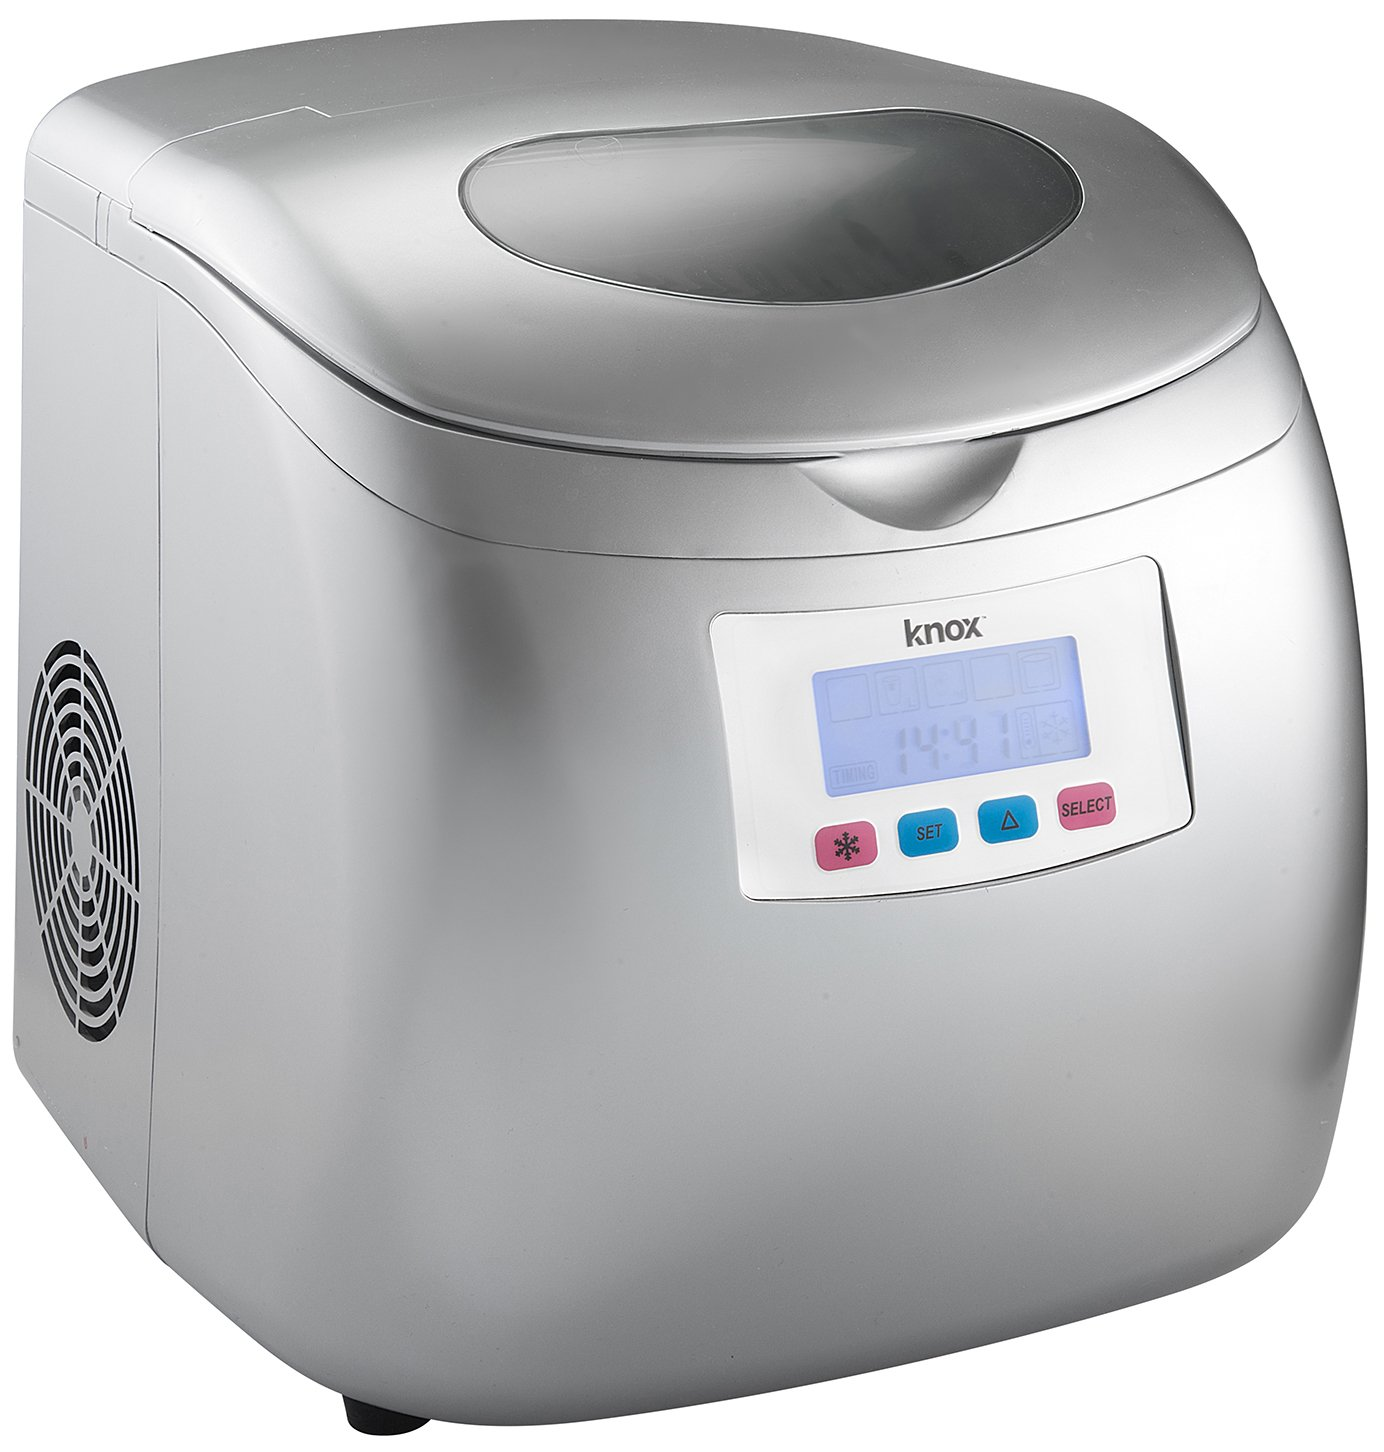 Knox Portable Compact Ice Maker with LCD Display Silver